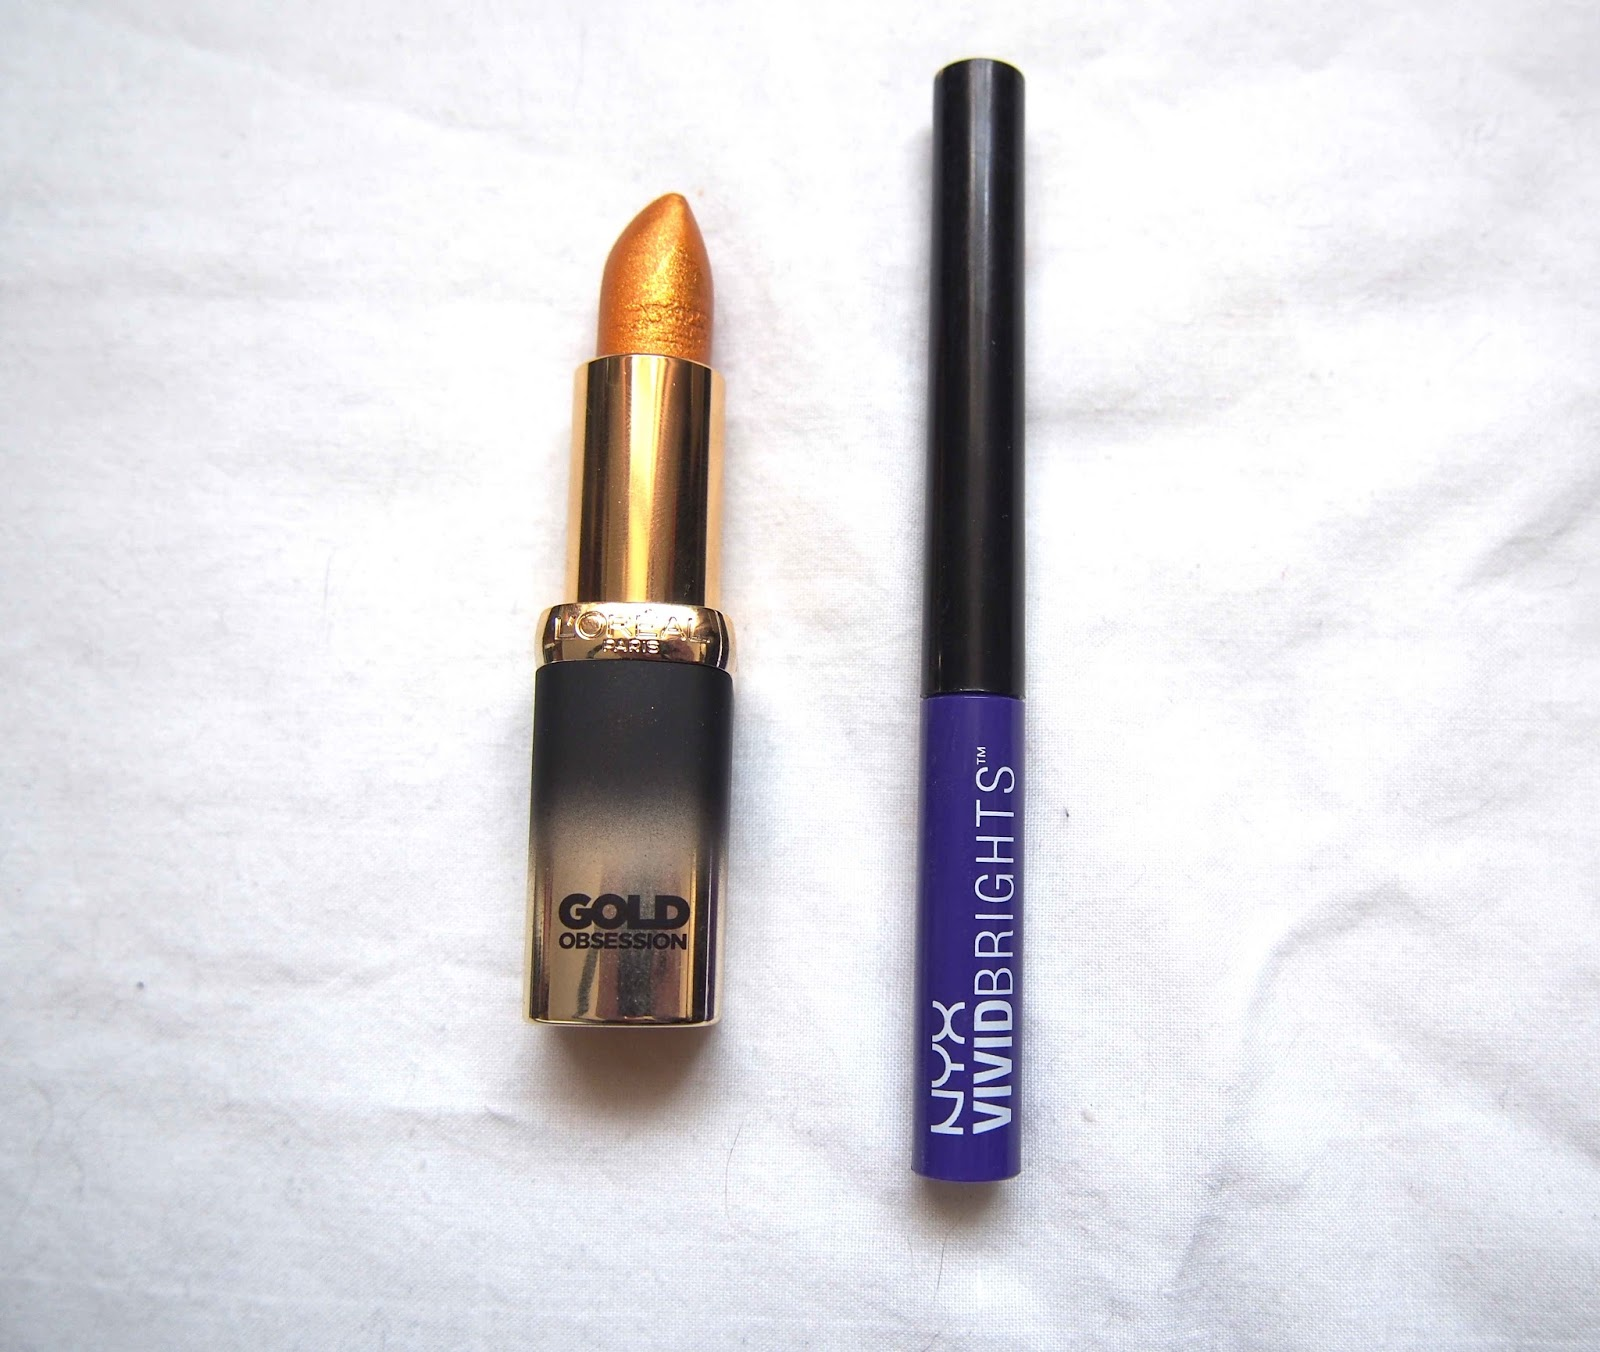 gold lipstick, loreal gold obsession riche lipstick pure gold, gold lipstick, lilac purple eyeliner, colourful makeup, subtle festival makeup, grunge makeup and hair, nyx vivid brights vivid violet 1